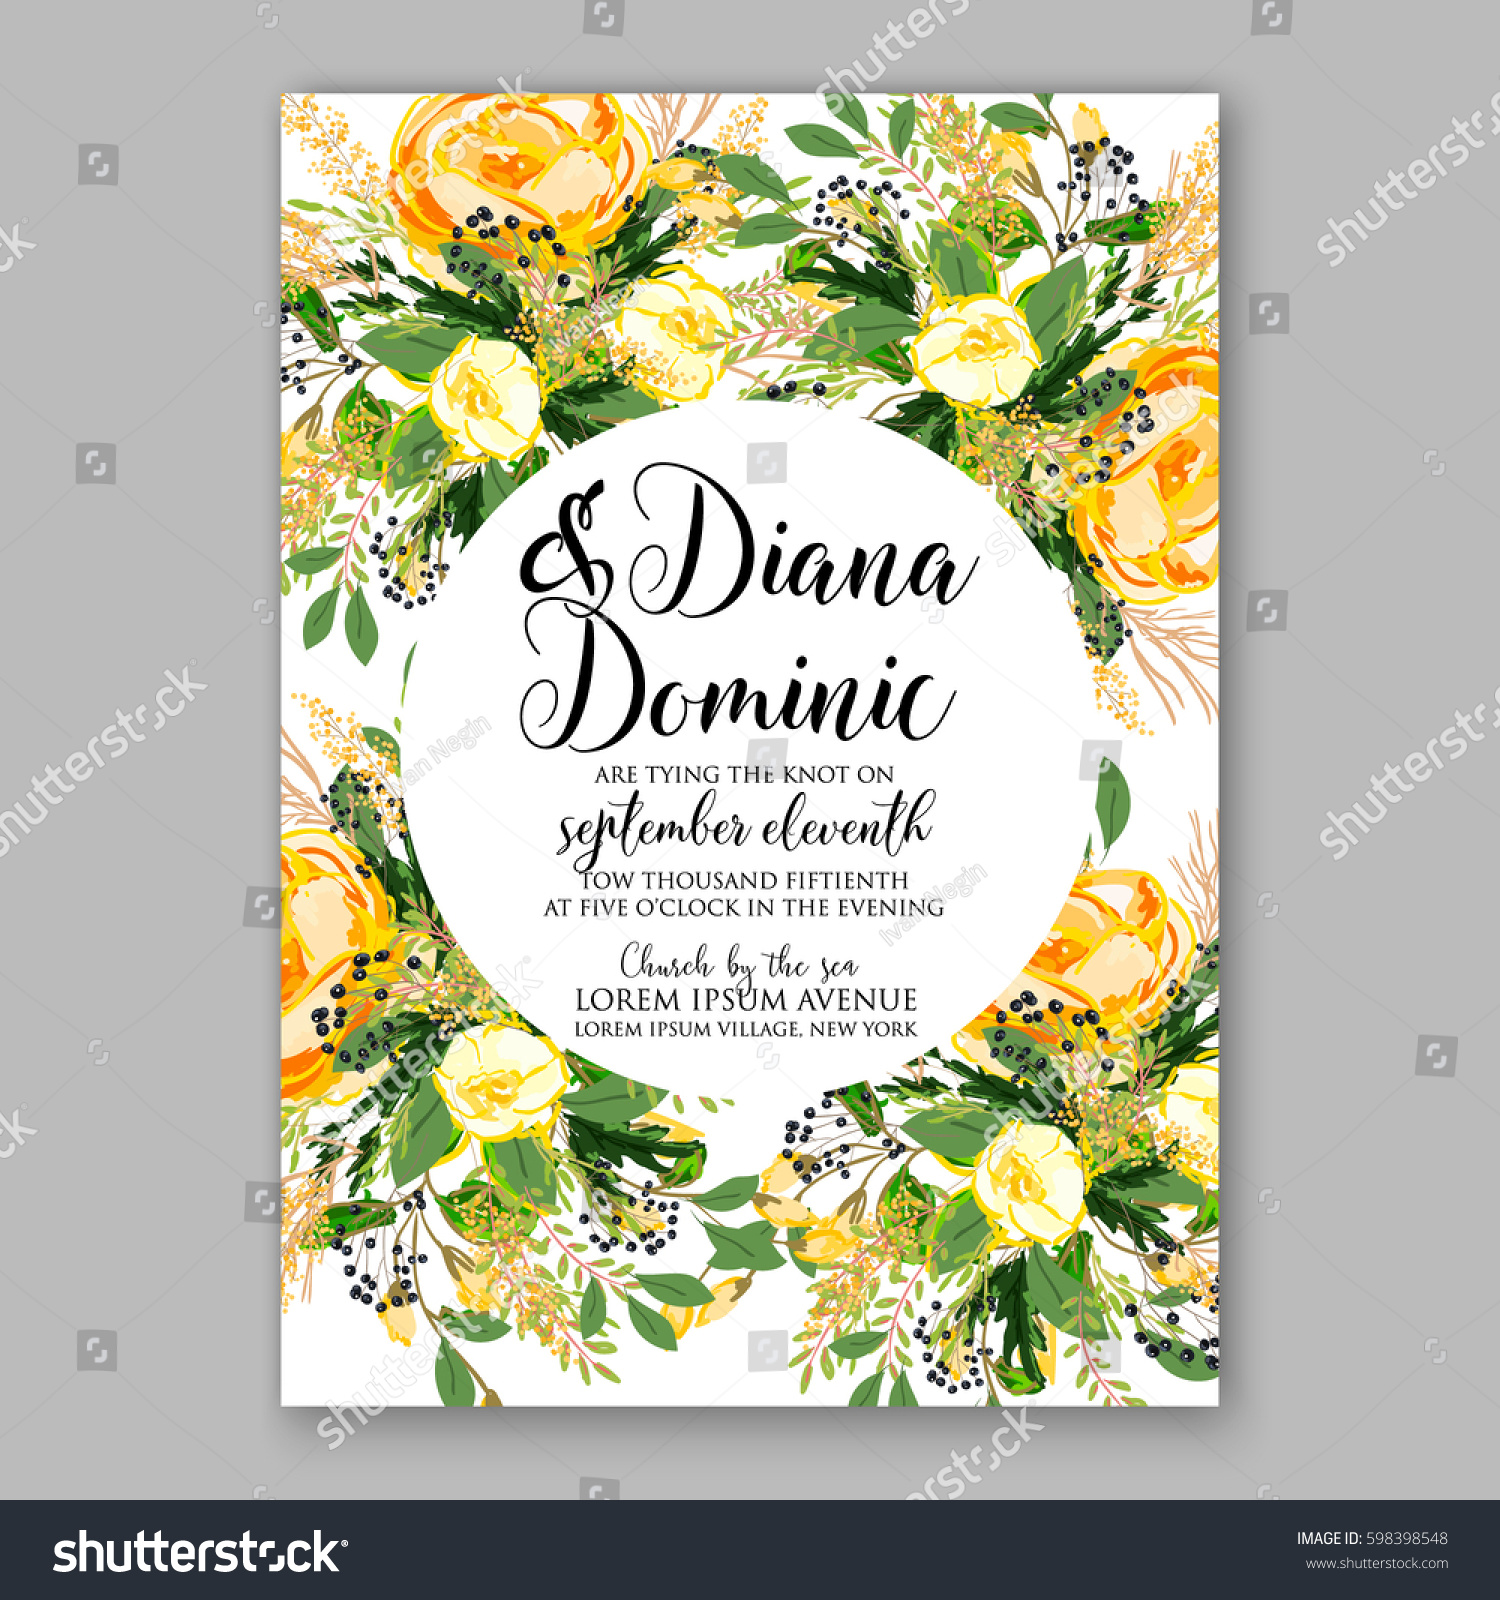 wedding invitation card template yellow rose stock vector